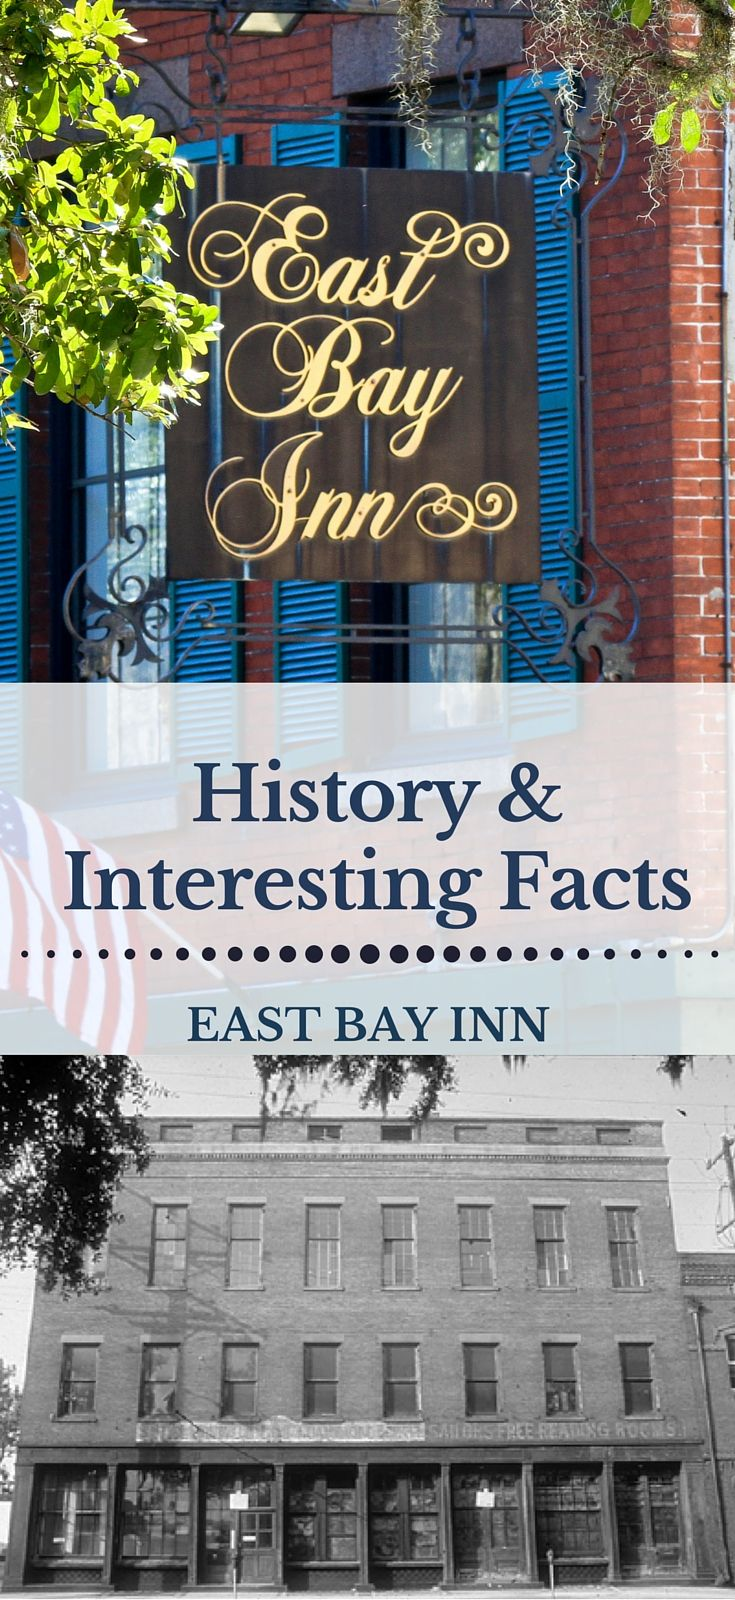 History of the East Bay Inn, our Historic Savannah Hotel --- The story of this historic Savannah Inn—East Bay Inn—began September 7, 1762, when the land on which the Inn now stands was granted to Mr. John Tucker by the Crown of England. Over the next ninety years, the property changed hands several times. On June 17, 1852, Edward Padefford purchased the property and began construction on the building that would one day become the East Bay Inn.